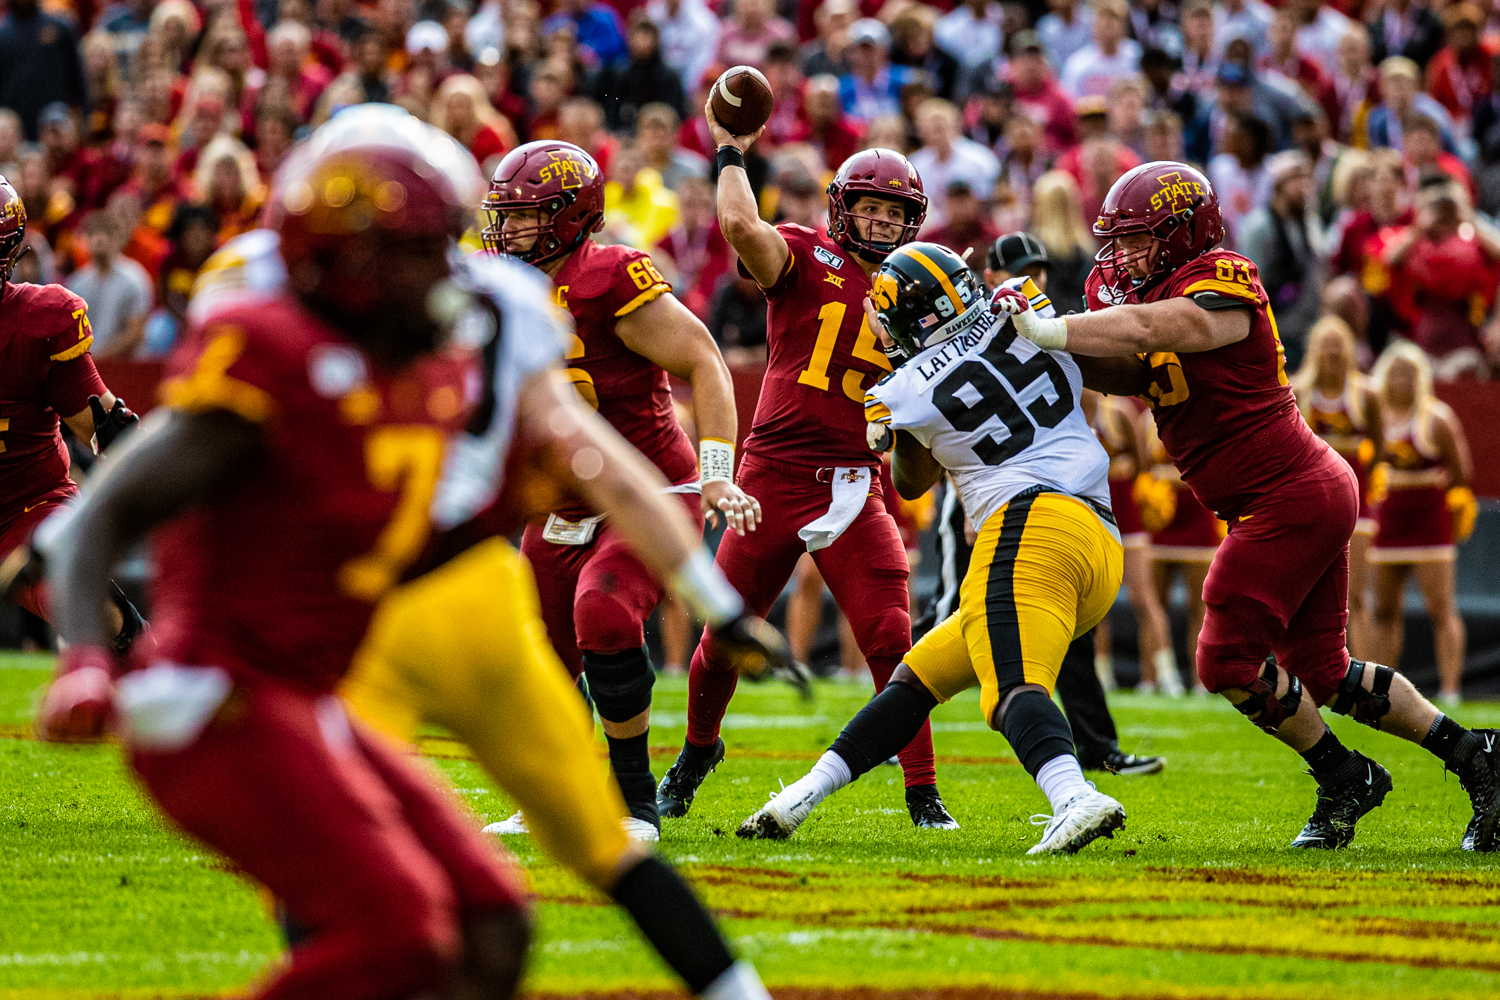 Iowa State quarterback Brock Purdy throws a pass during a football game between Iowa and Iowa State at Jack Trice Stadium in Ames on Saturday, September 14, 2019.